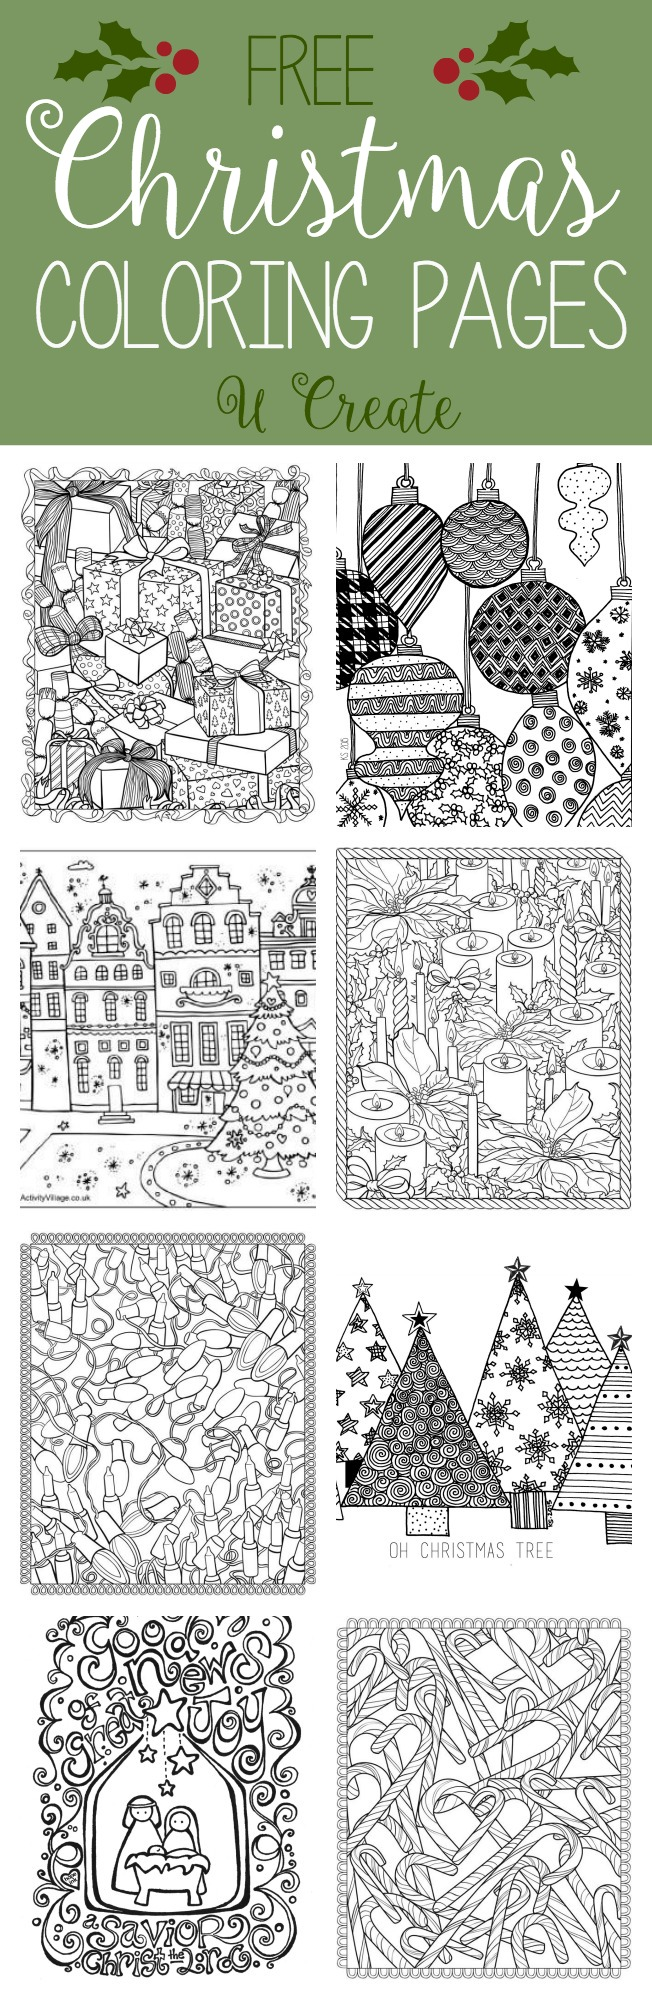 Free Christmas Adult Coloring Pages U Create